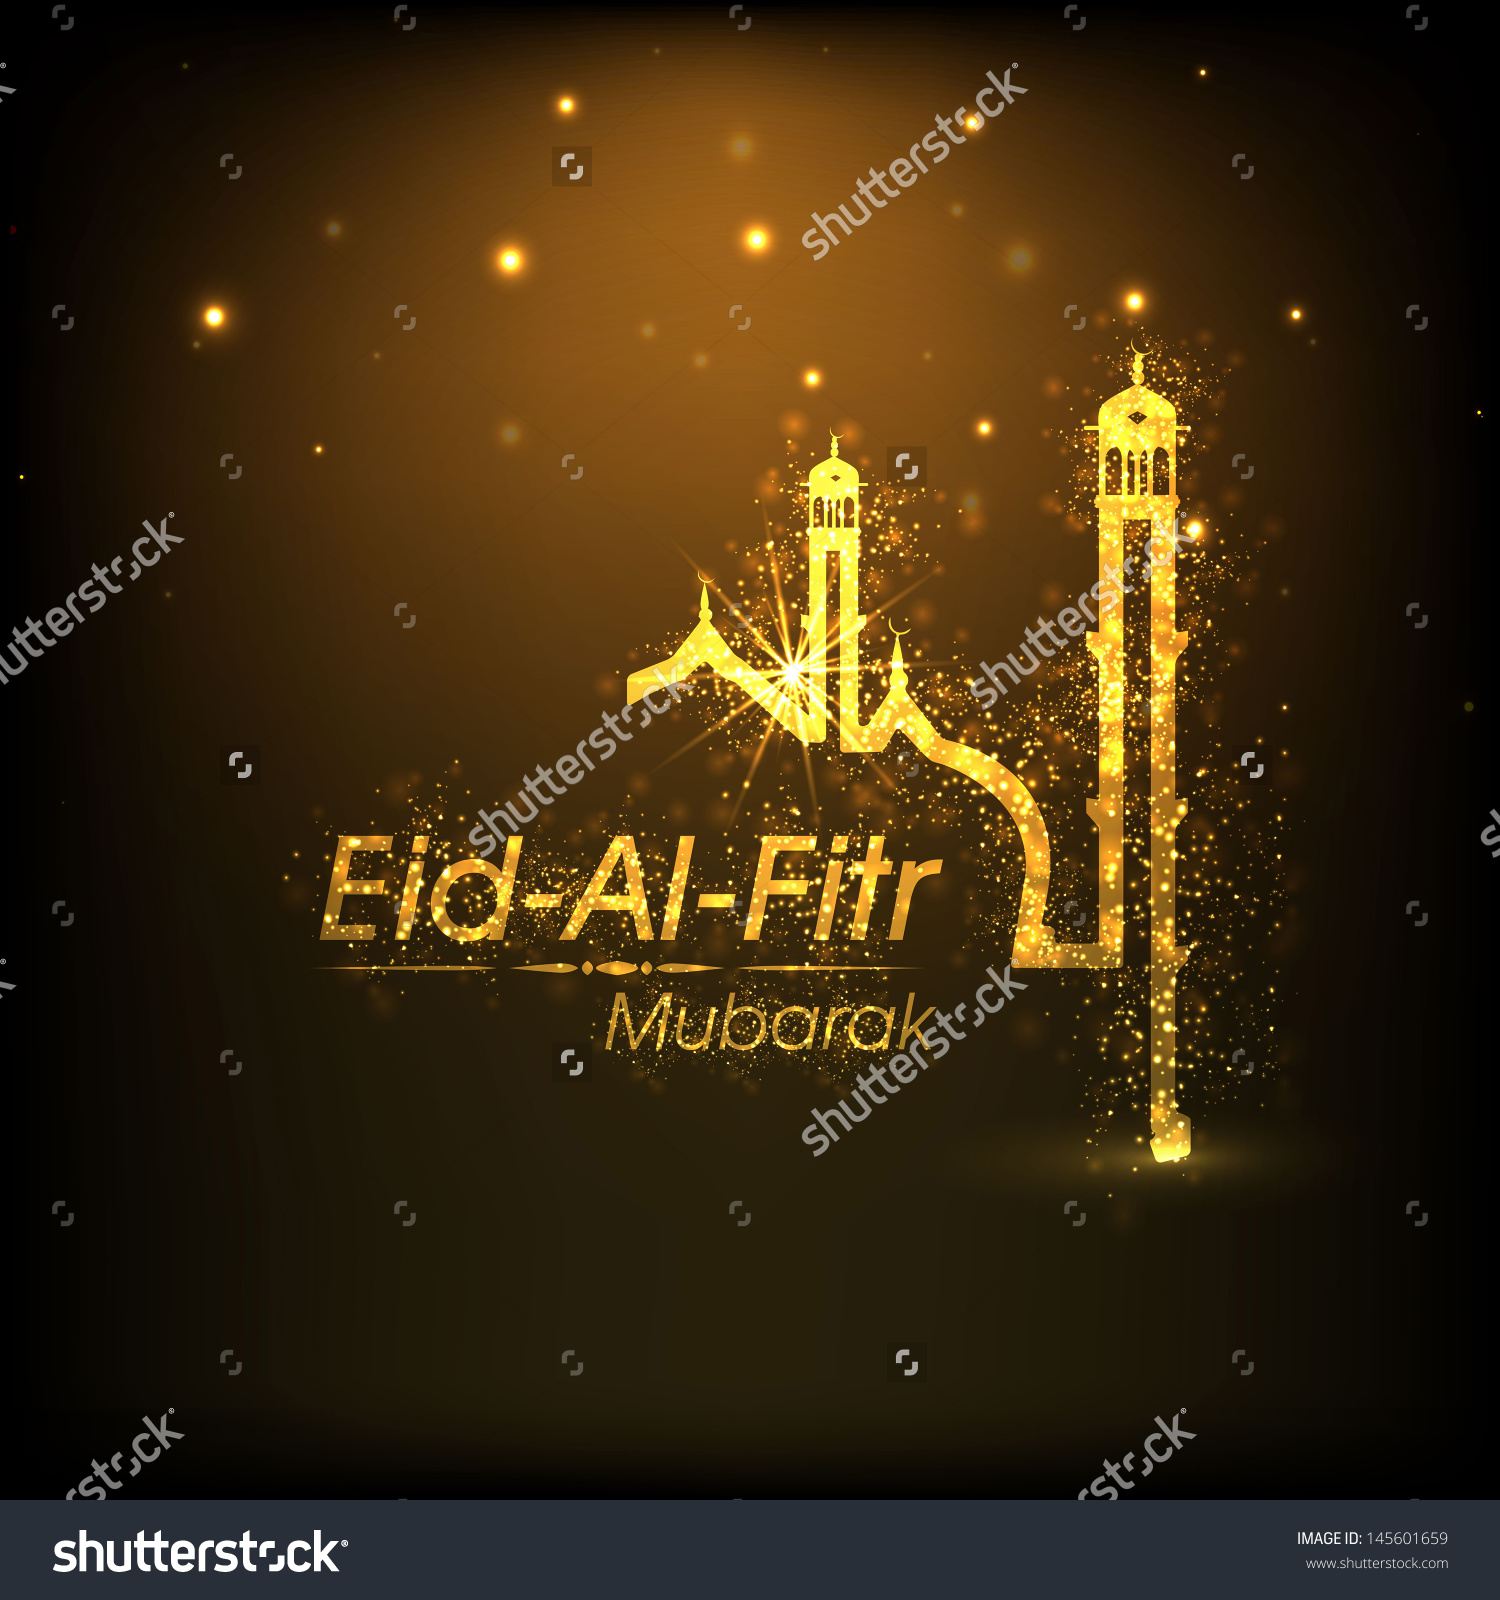 Awesome top best eid mubarak beautiful greetings cards ecards eid mubarak greetings cards 20172b252822529 kristyandbryce Image collections